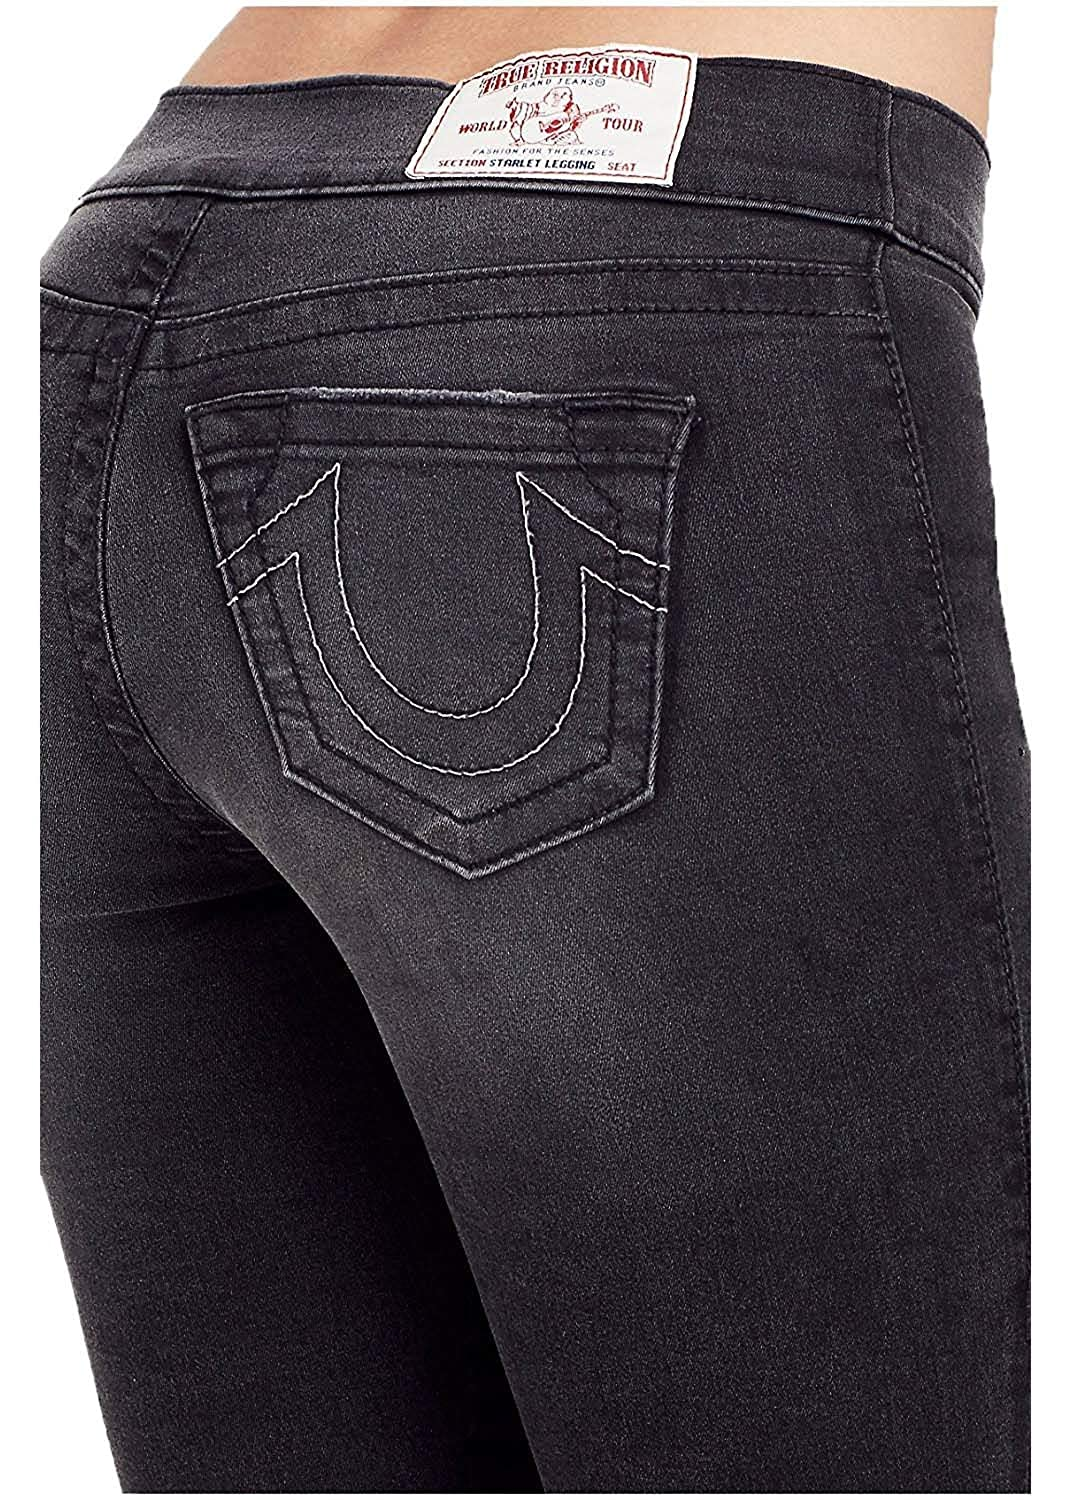 d421b163967b23 Amazon.com: True Religion Women's Starlet Legging Super Skinny Leg Pants in  Black Years Away: Clothing